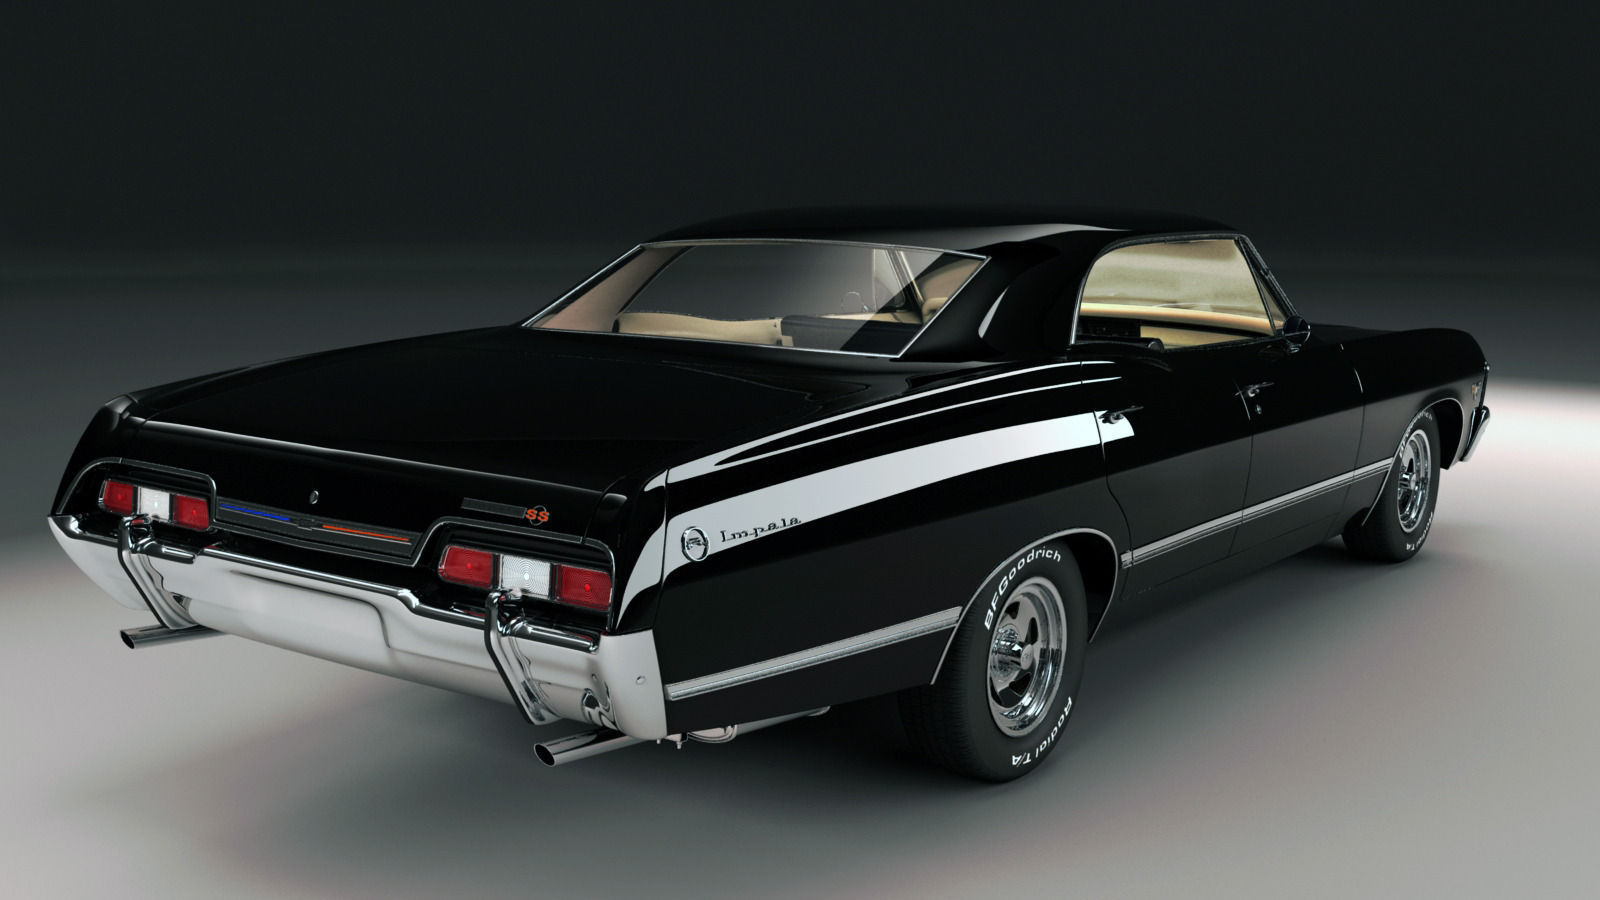 chevrolet impala ss 1967 3d model max obj fbx mtl. Black Bedroom Furniture Sets. Home Design Ideas